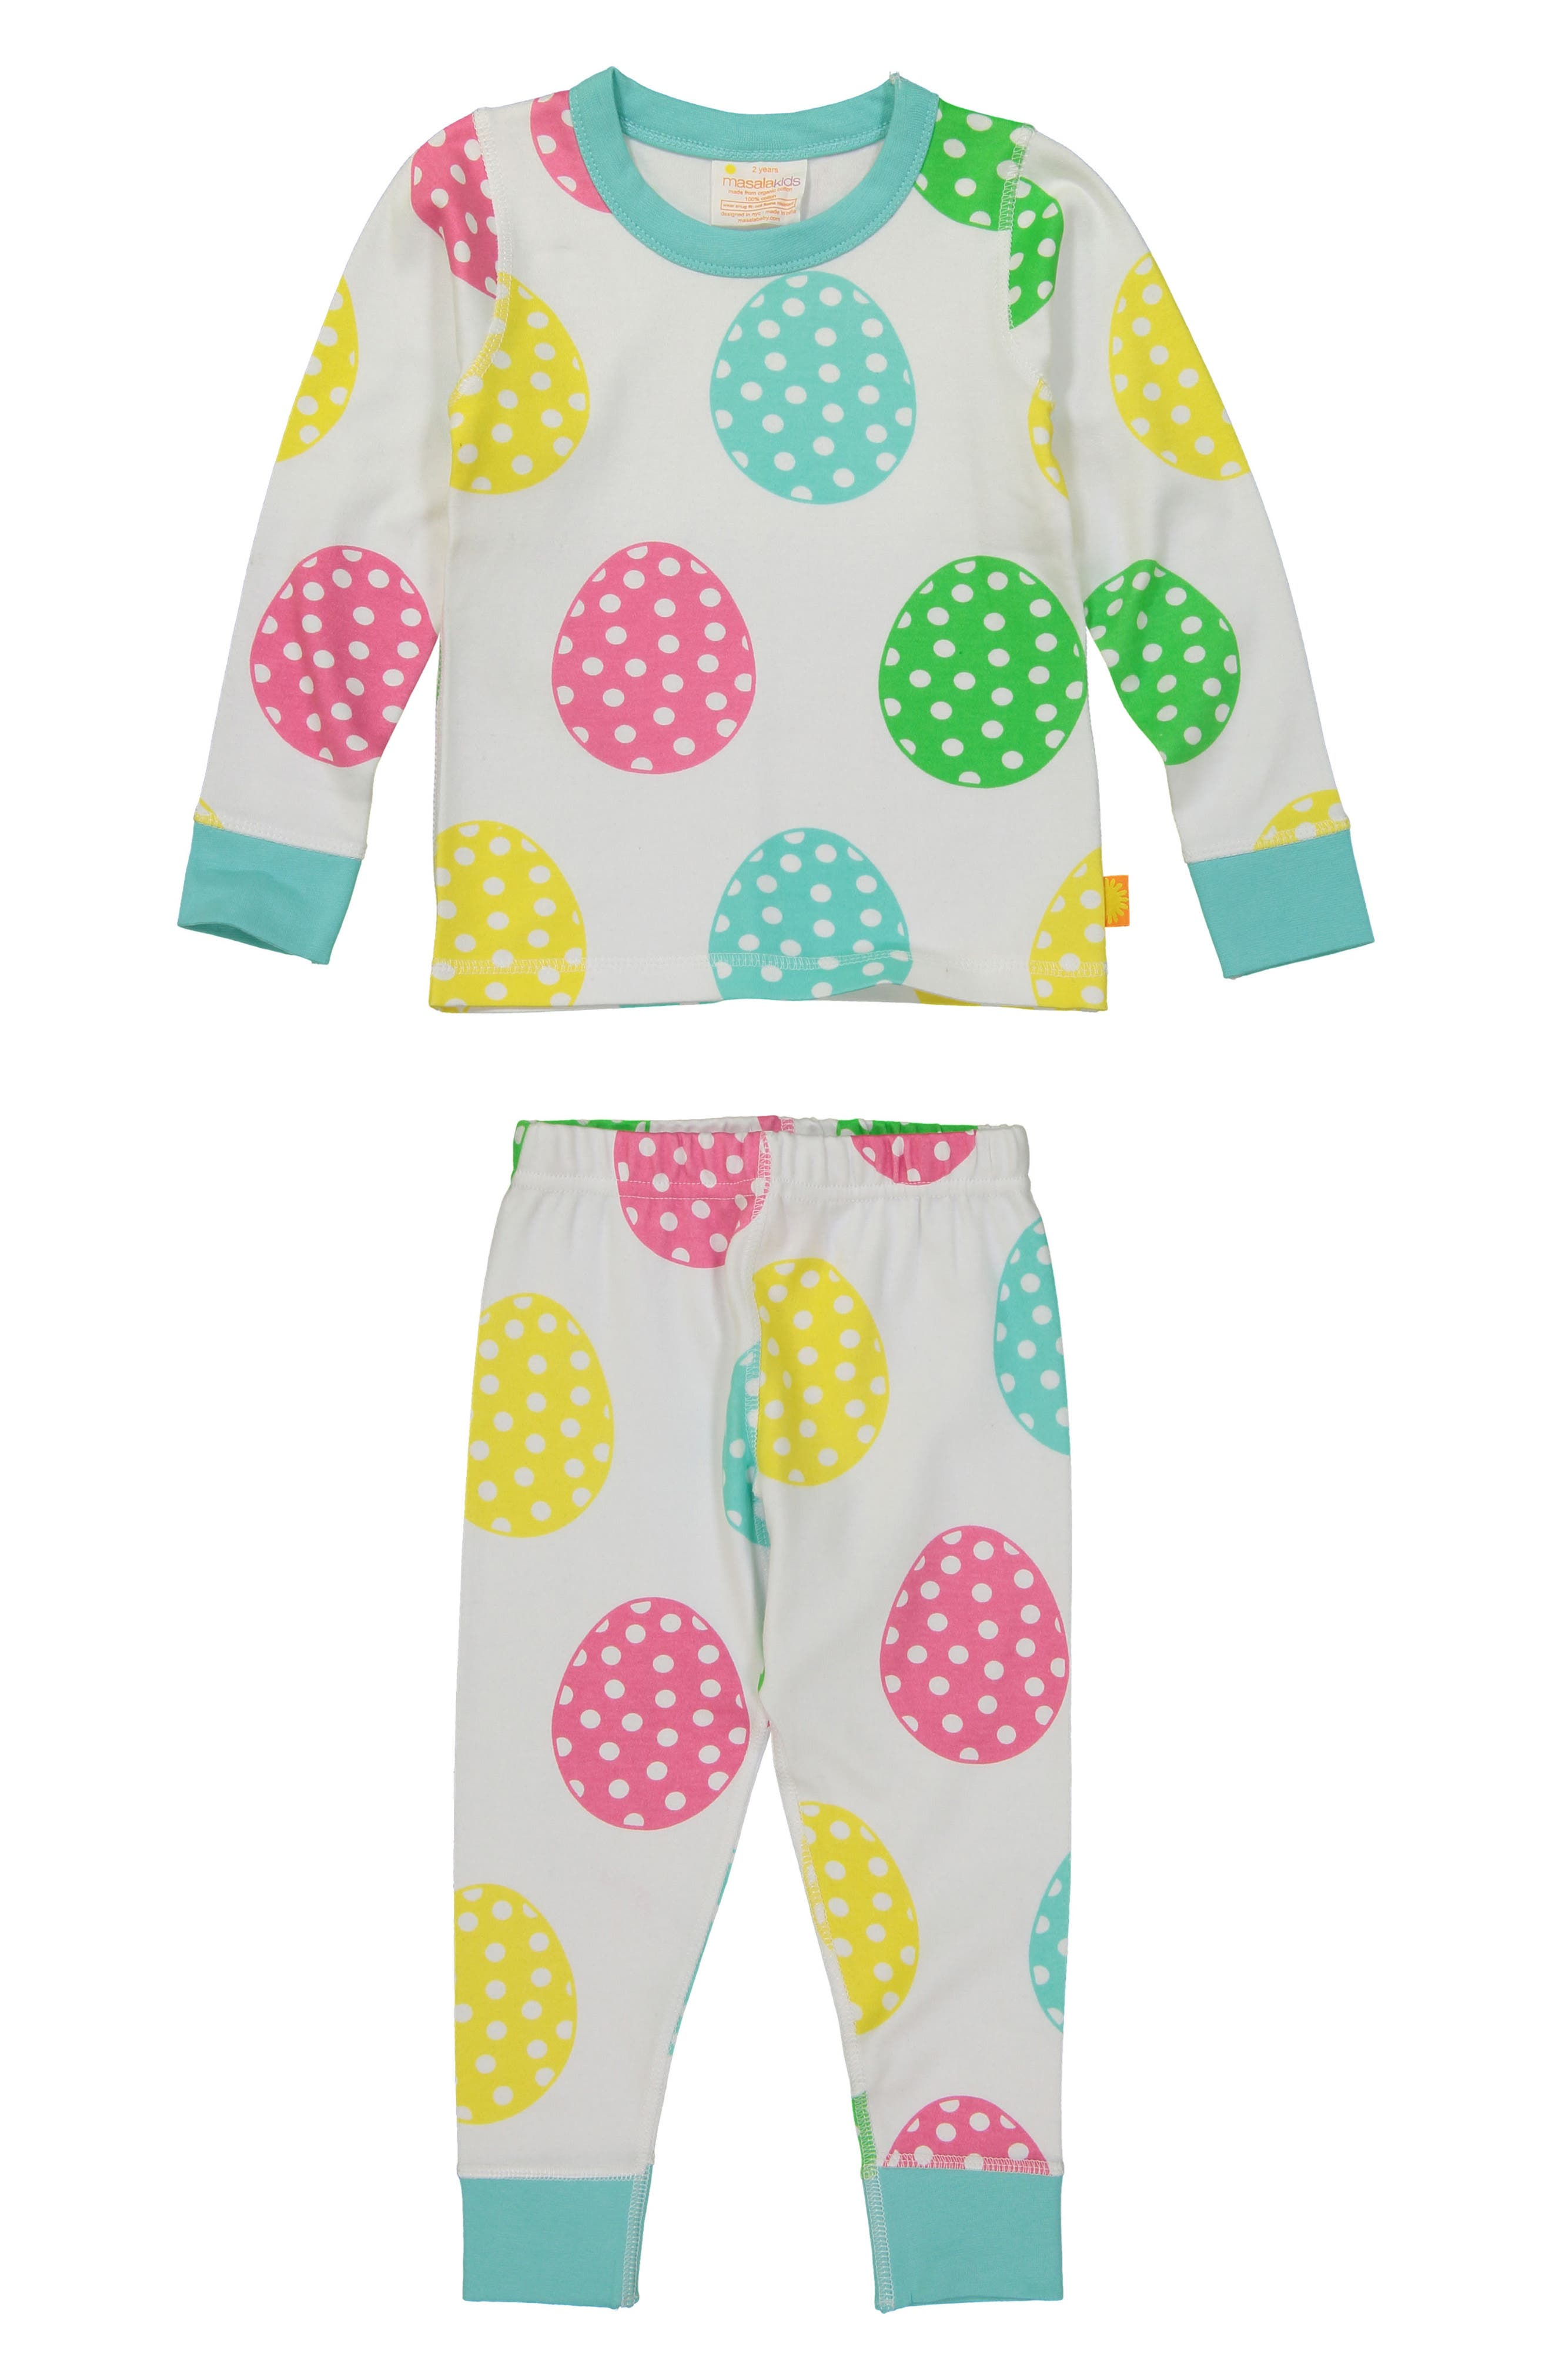 Alternate Image 1 Selected - Masala Baby Rainbow Eggs Organic Cotton Fitted Two-Piece Pajamas (Toddler Girls, Little Girls & Big Girls)